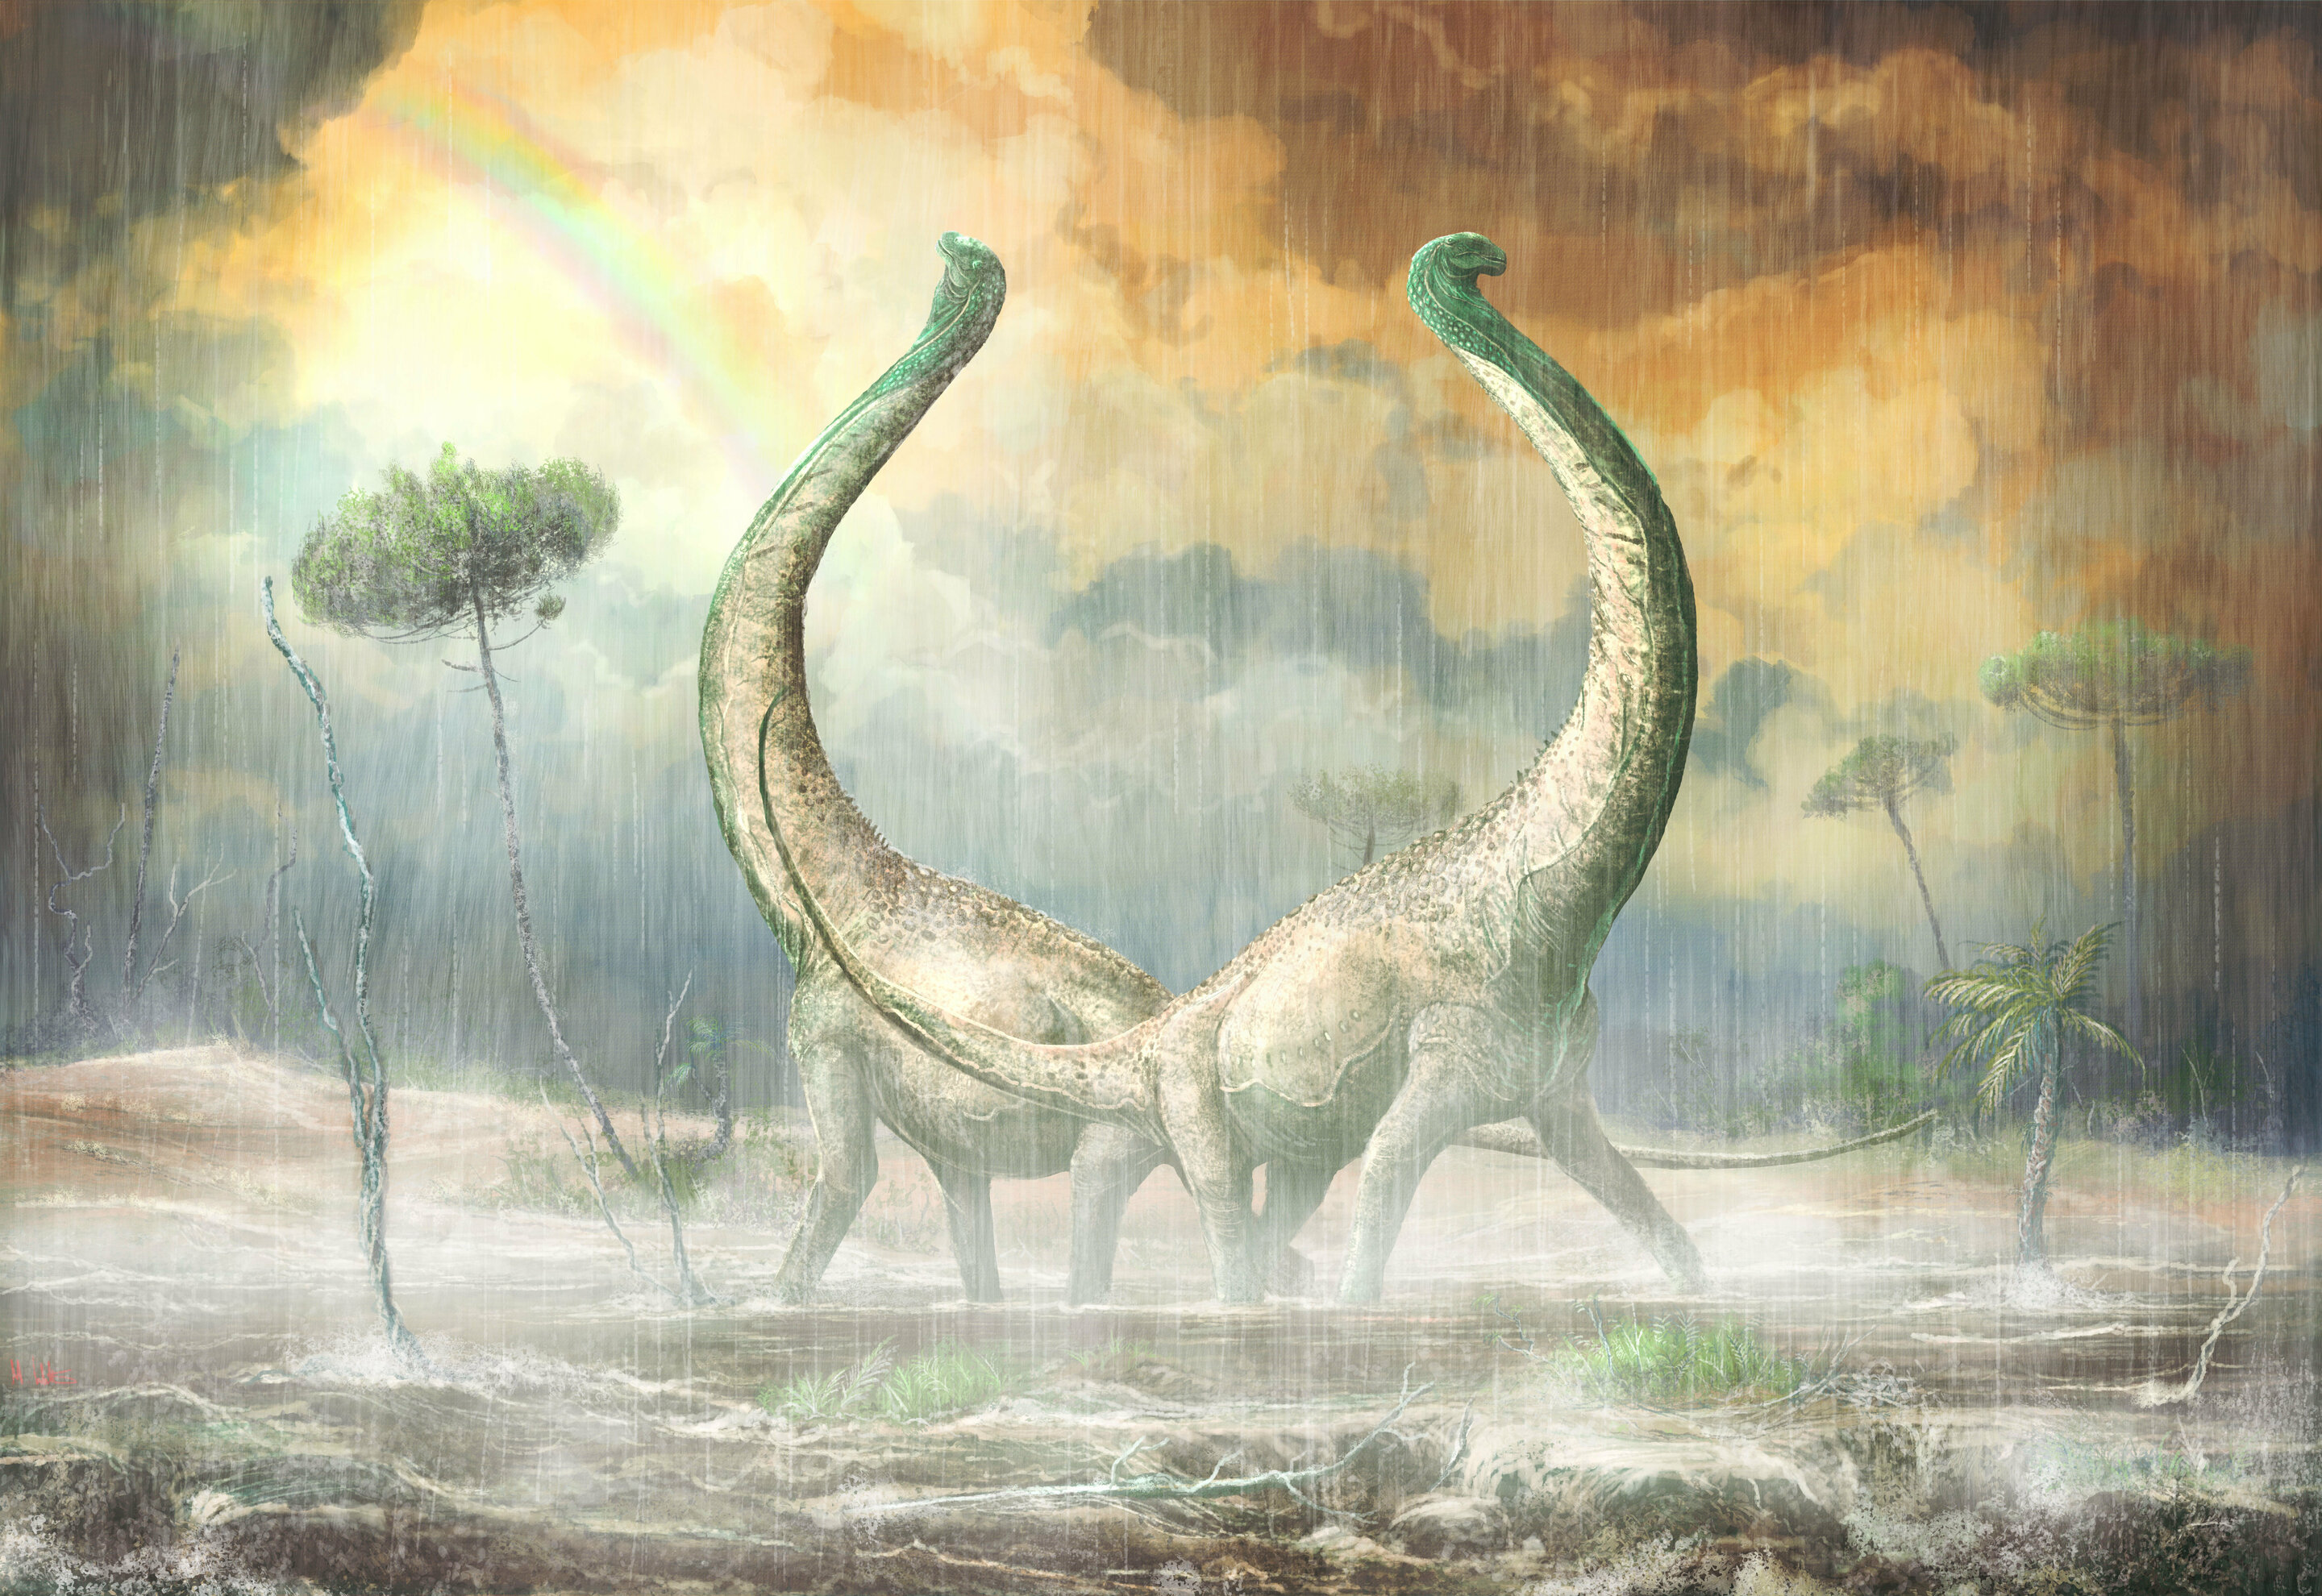 Mnyamawamtuka: New dinosaur with heart-shaped tail ...